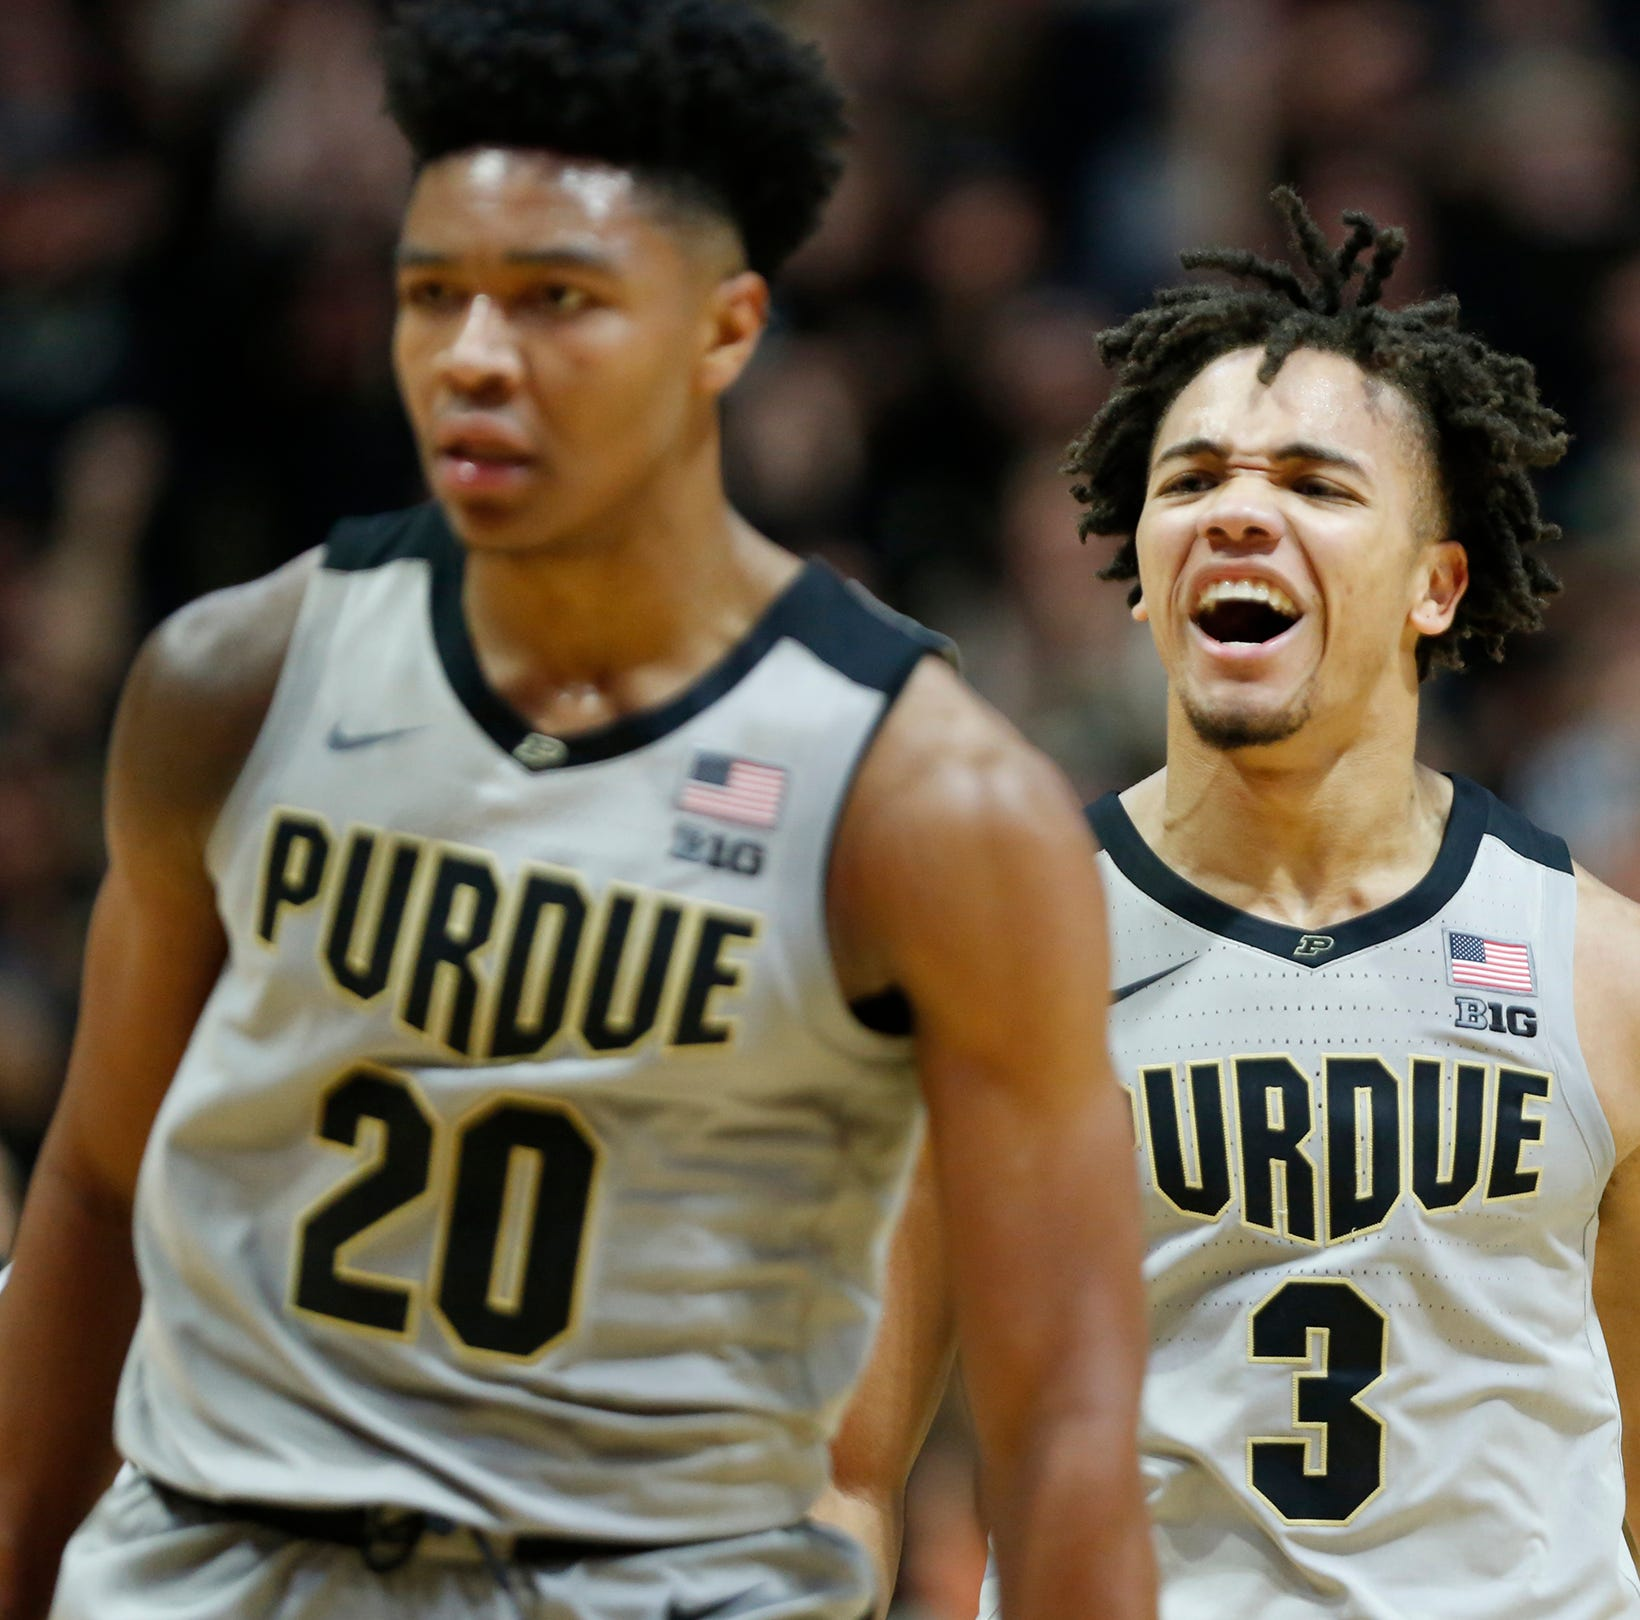 Doyel: This year's Purdue roster is a weird mix — but it'll work. Just watch